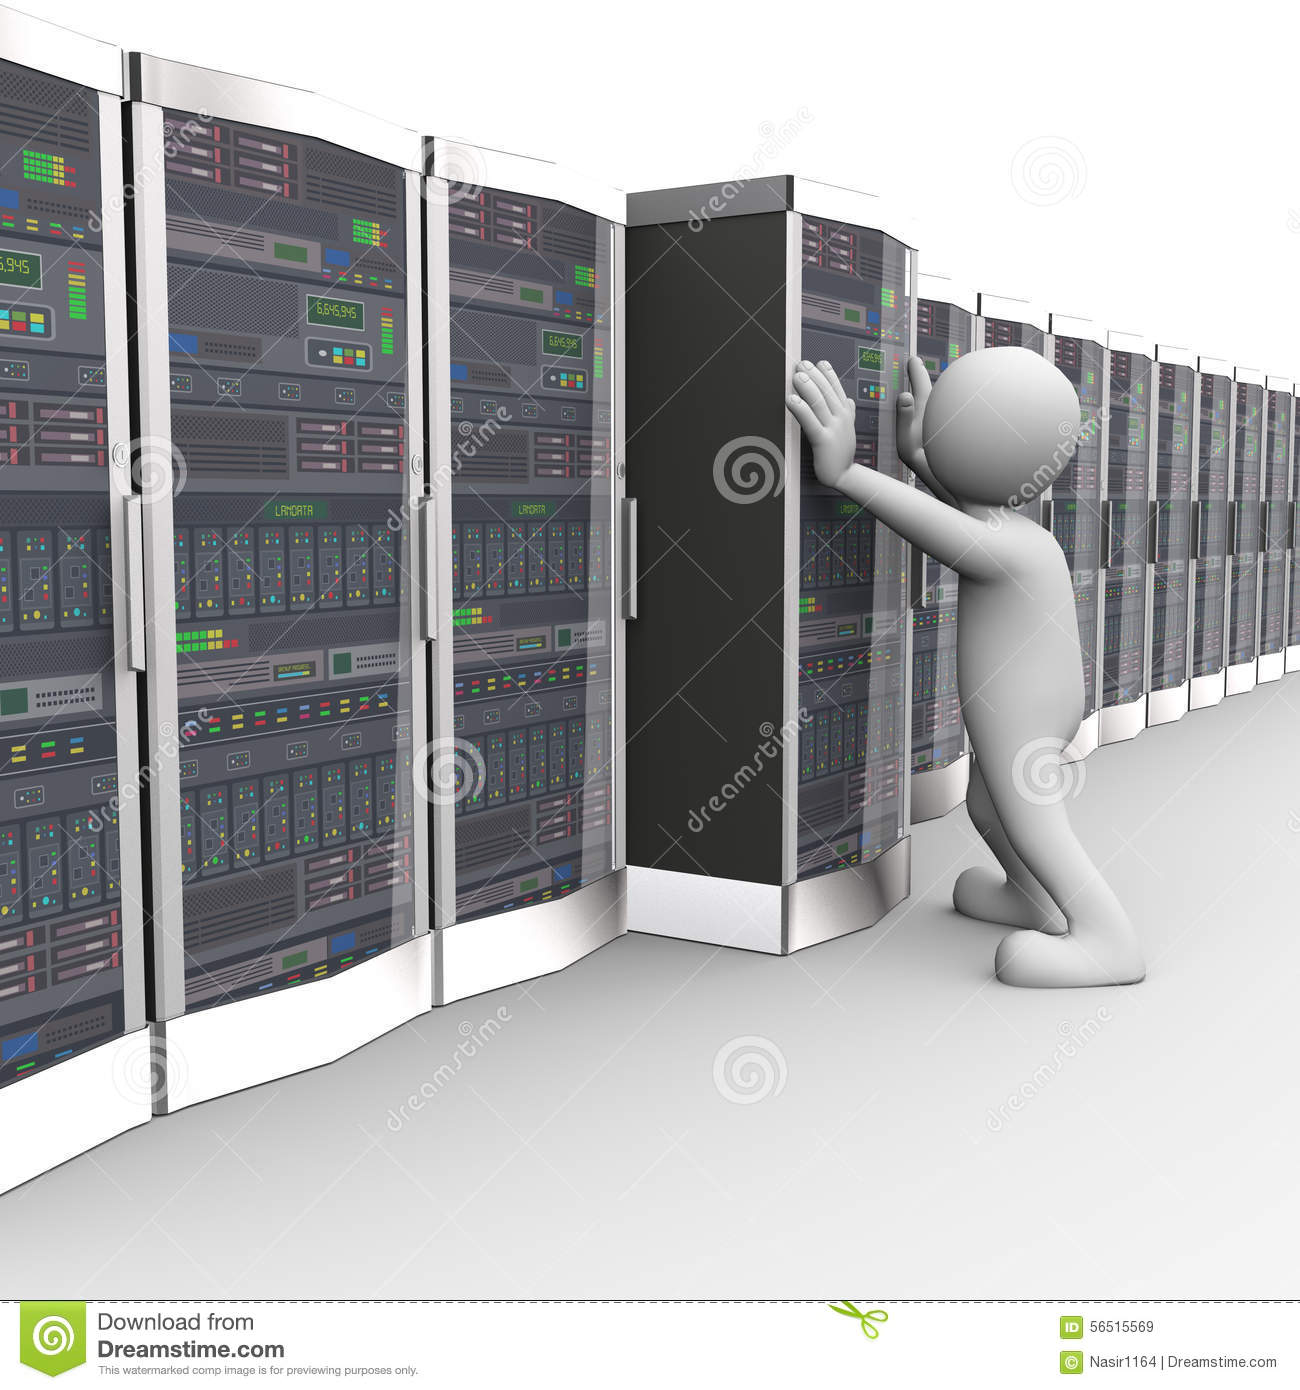 how to connect computer to work server